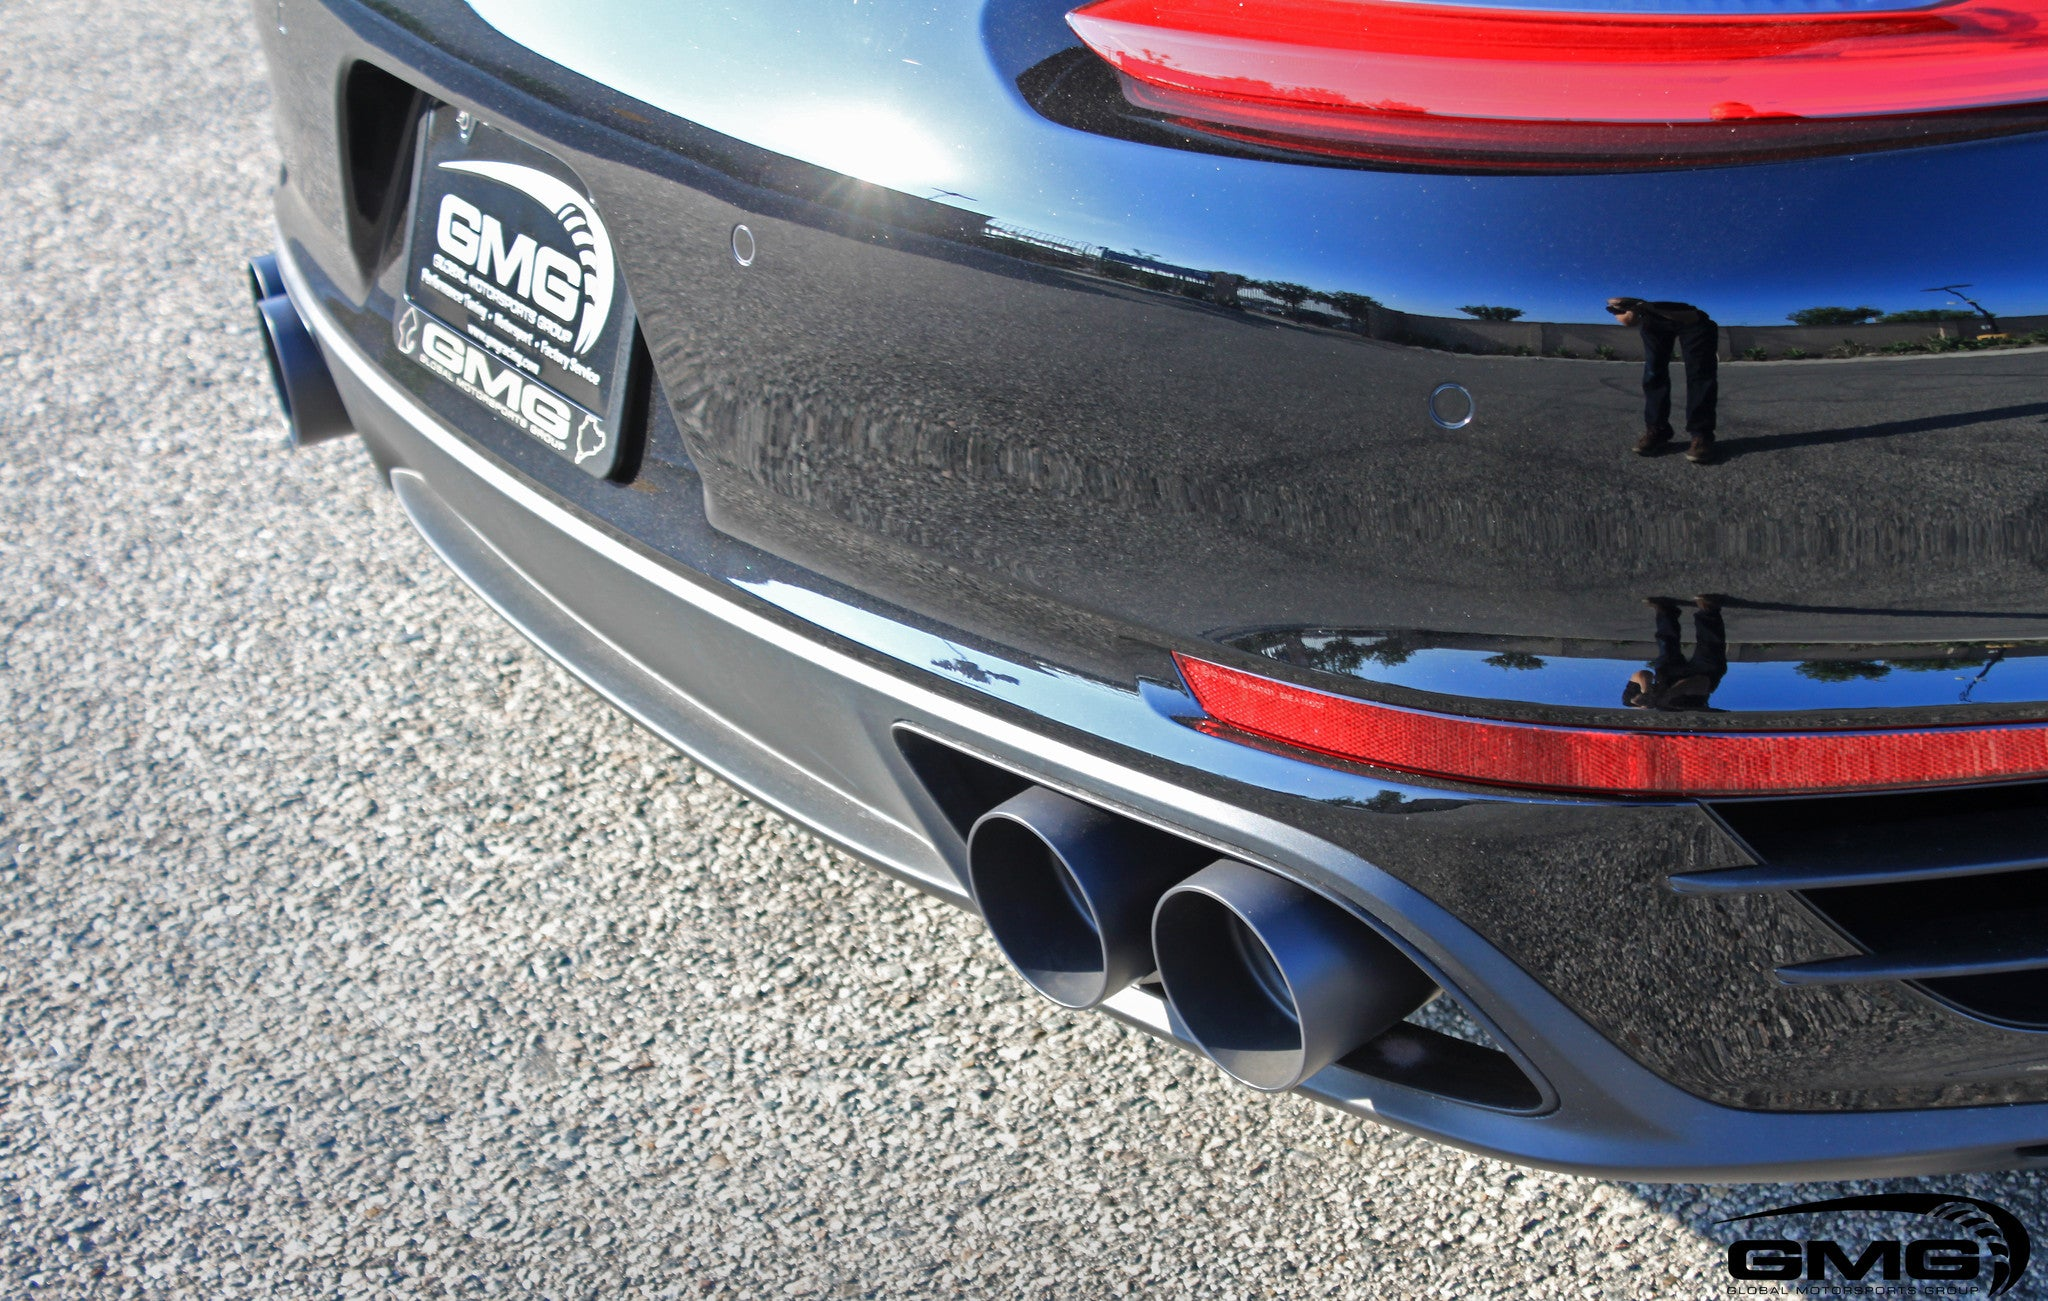 991.2 Turbo GMG WC-Sport Exhaust System